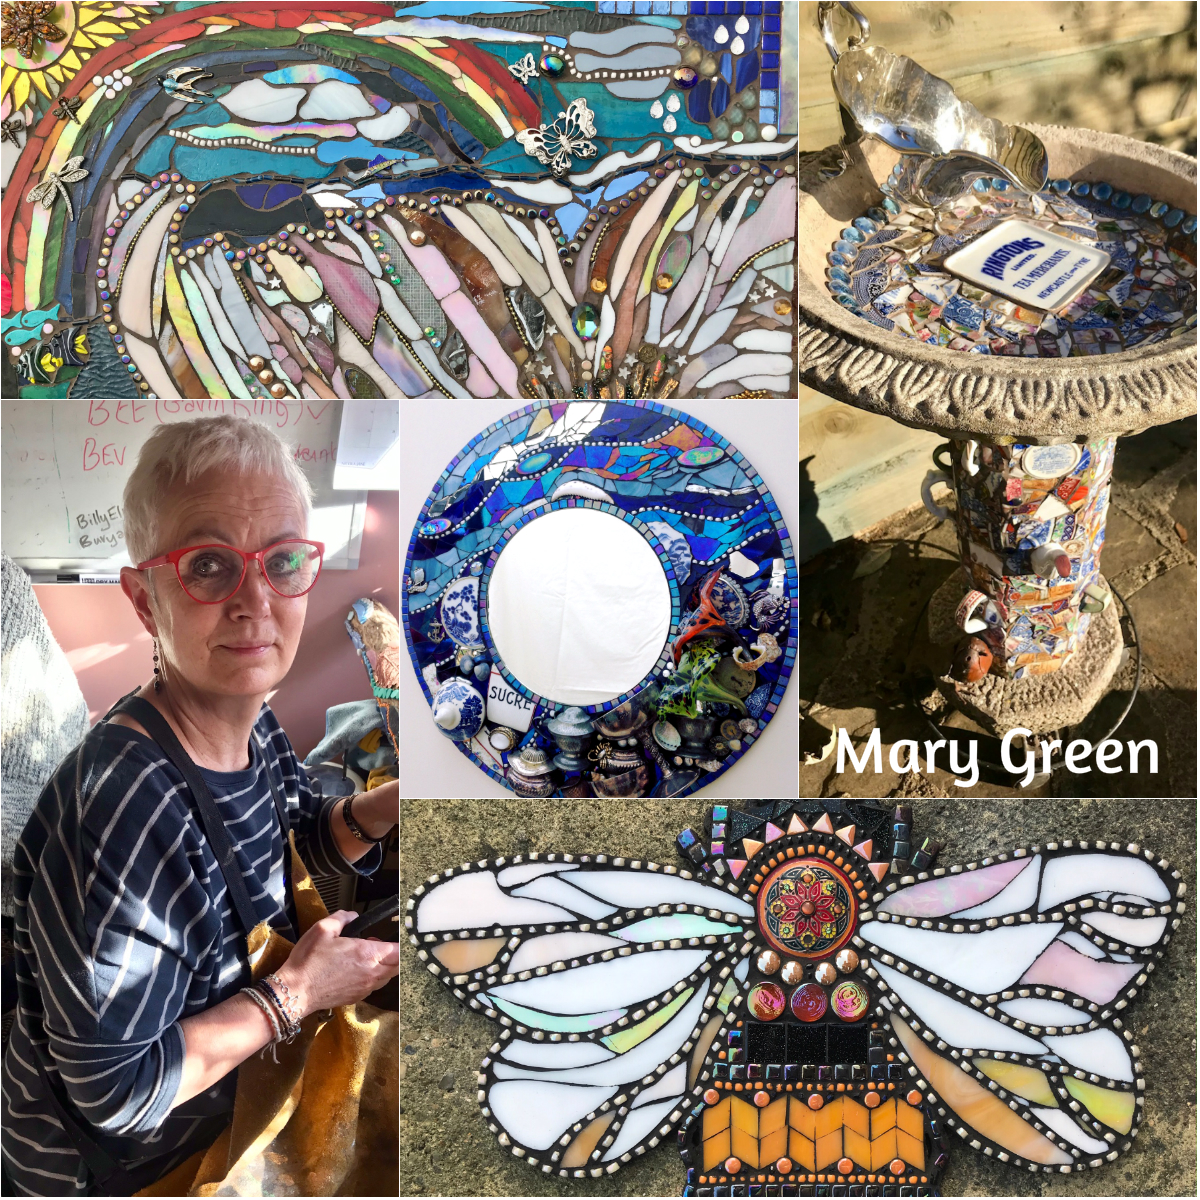 Mary Green - Artist Market at Stamford Arts Centre